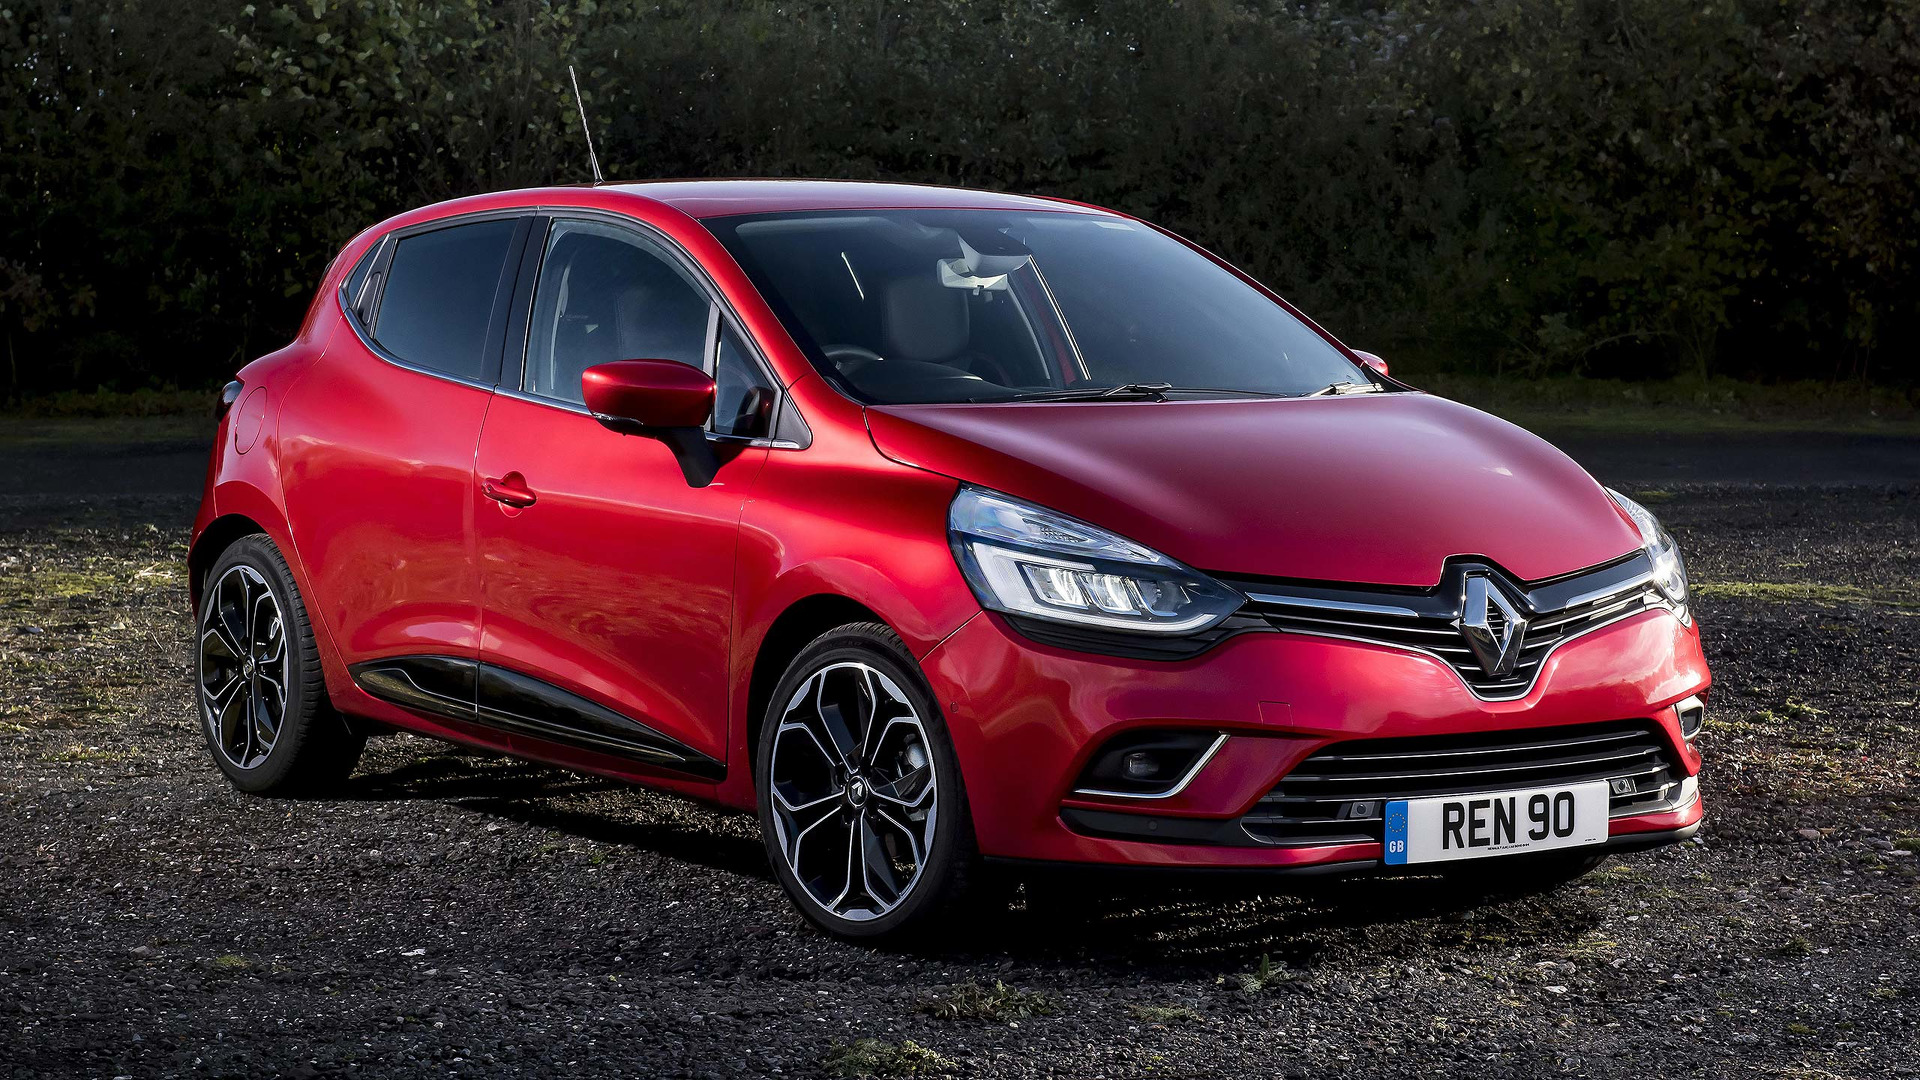 2017 Renault Clio Review | Top Gear